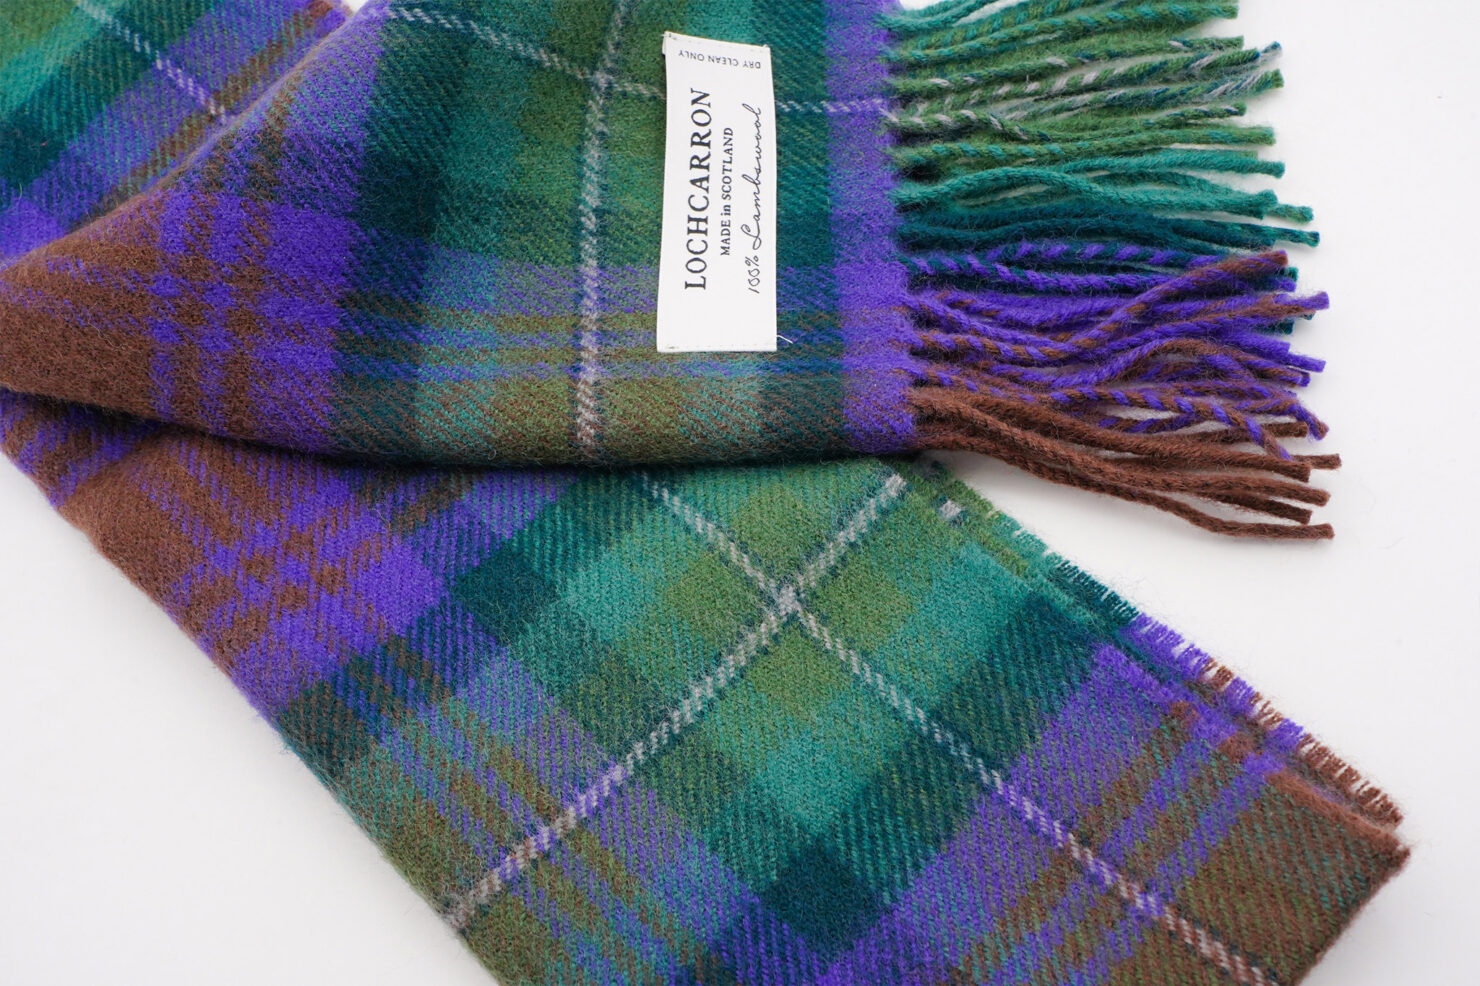 BRUSHWOOL LONG ISLE OF SKYE SCARF - LOCHCARRON OF SCOTLAND